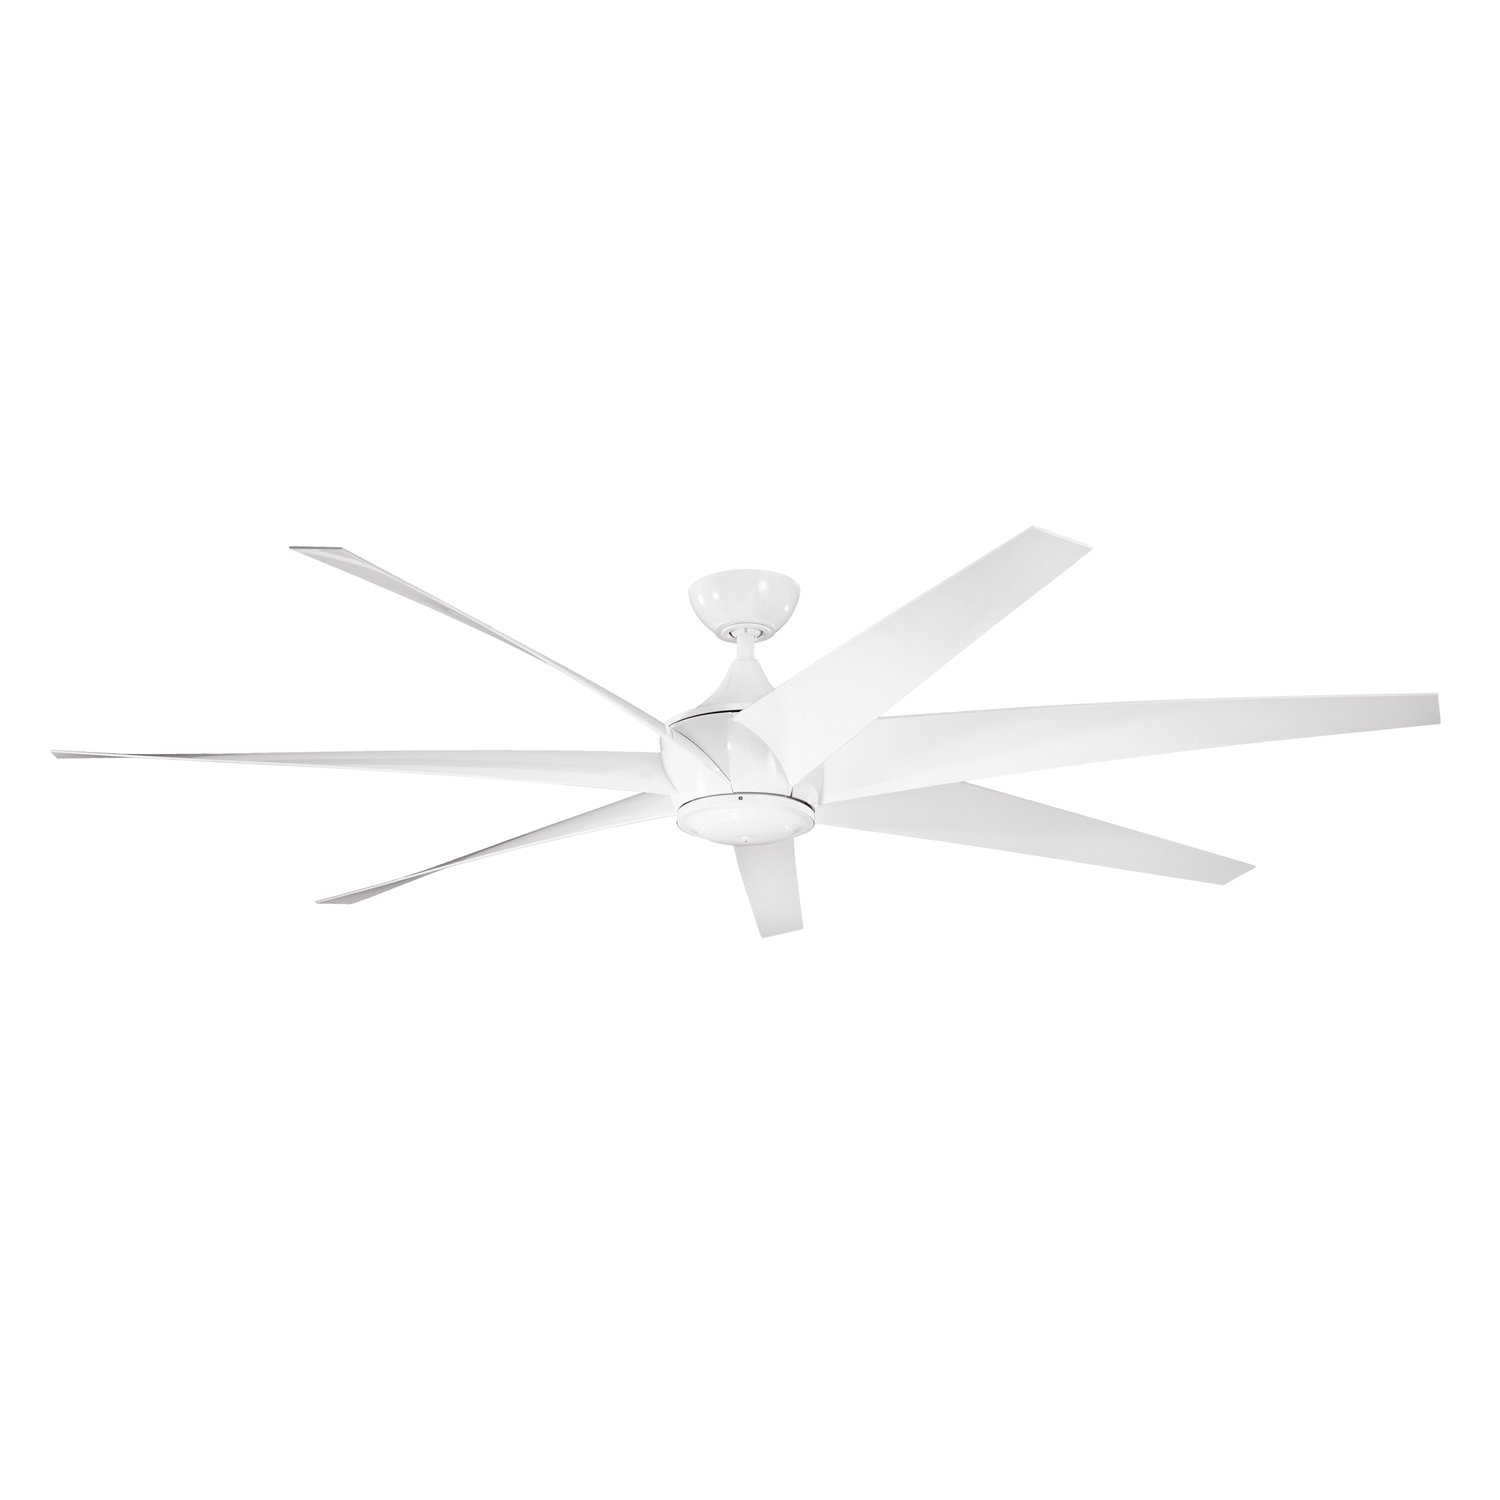 Kichler ANS 80 Ceiling Fan Amazon